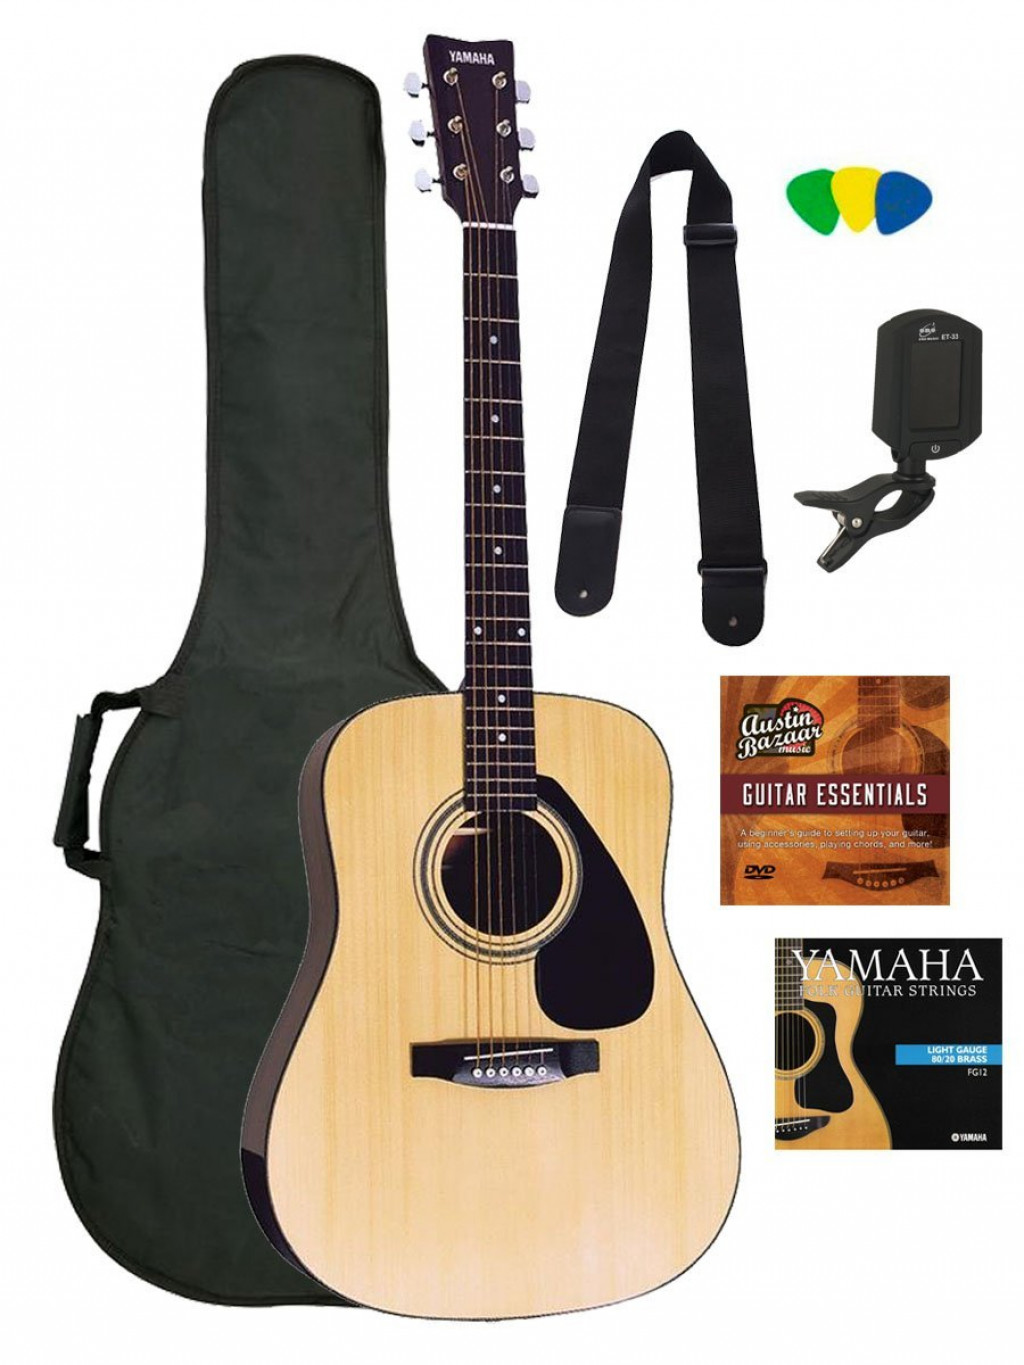 How Much Does A Yamaha Guitar Cost